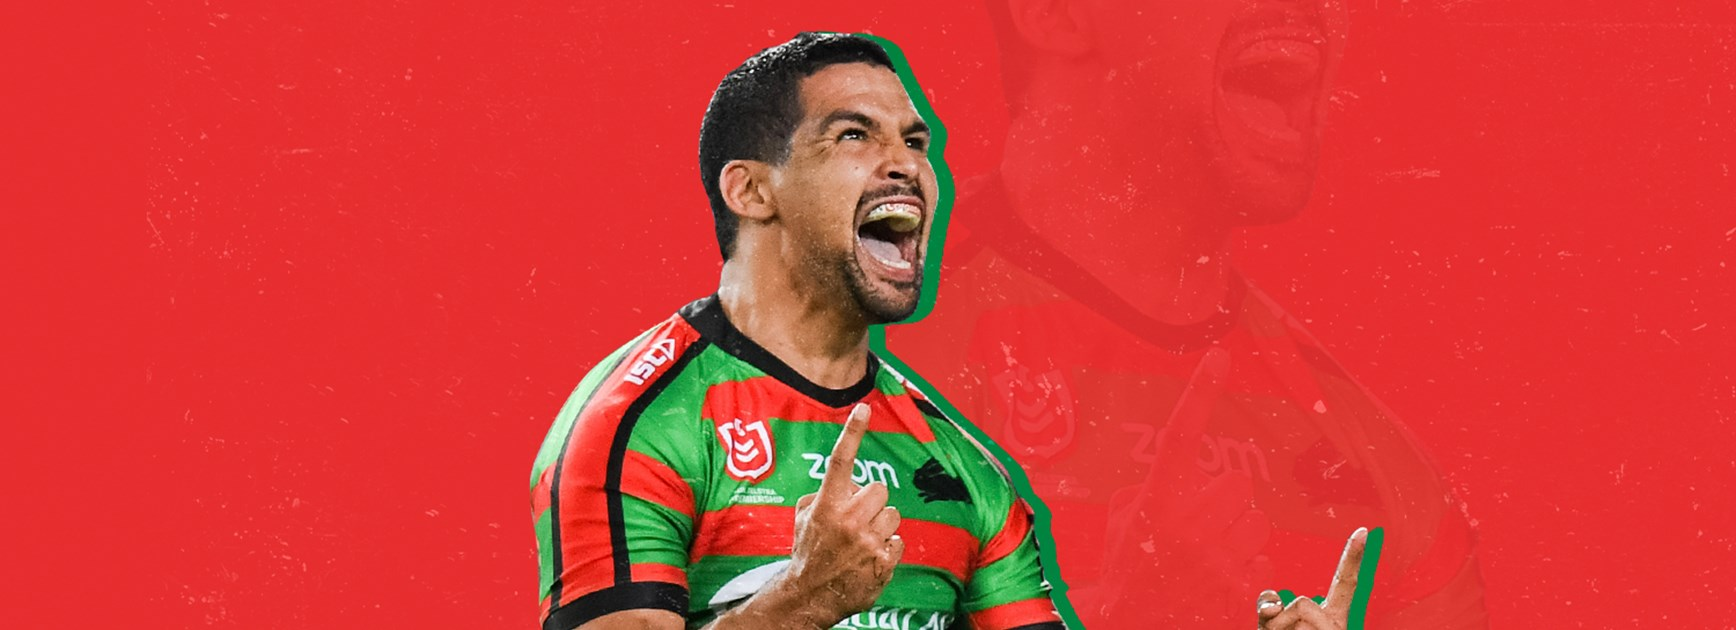 Rabbitohs Extend Contract of Cody Walker Until End of 2022